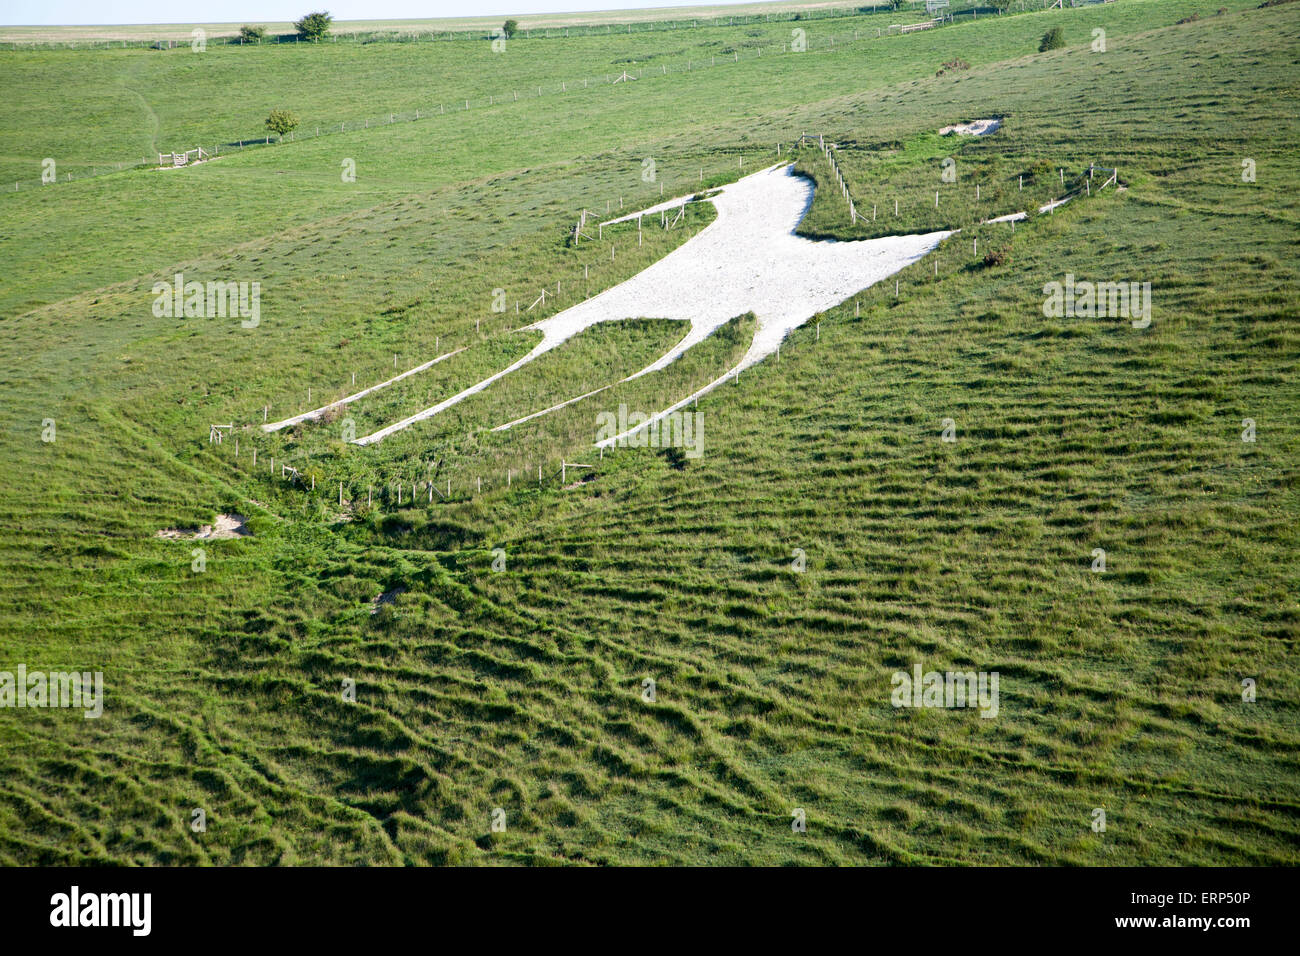 White horse figure carved in chalk scarp slope at Alton Barnes, Wiltshire, England, UK Stock Photo